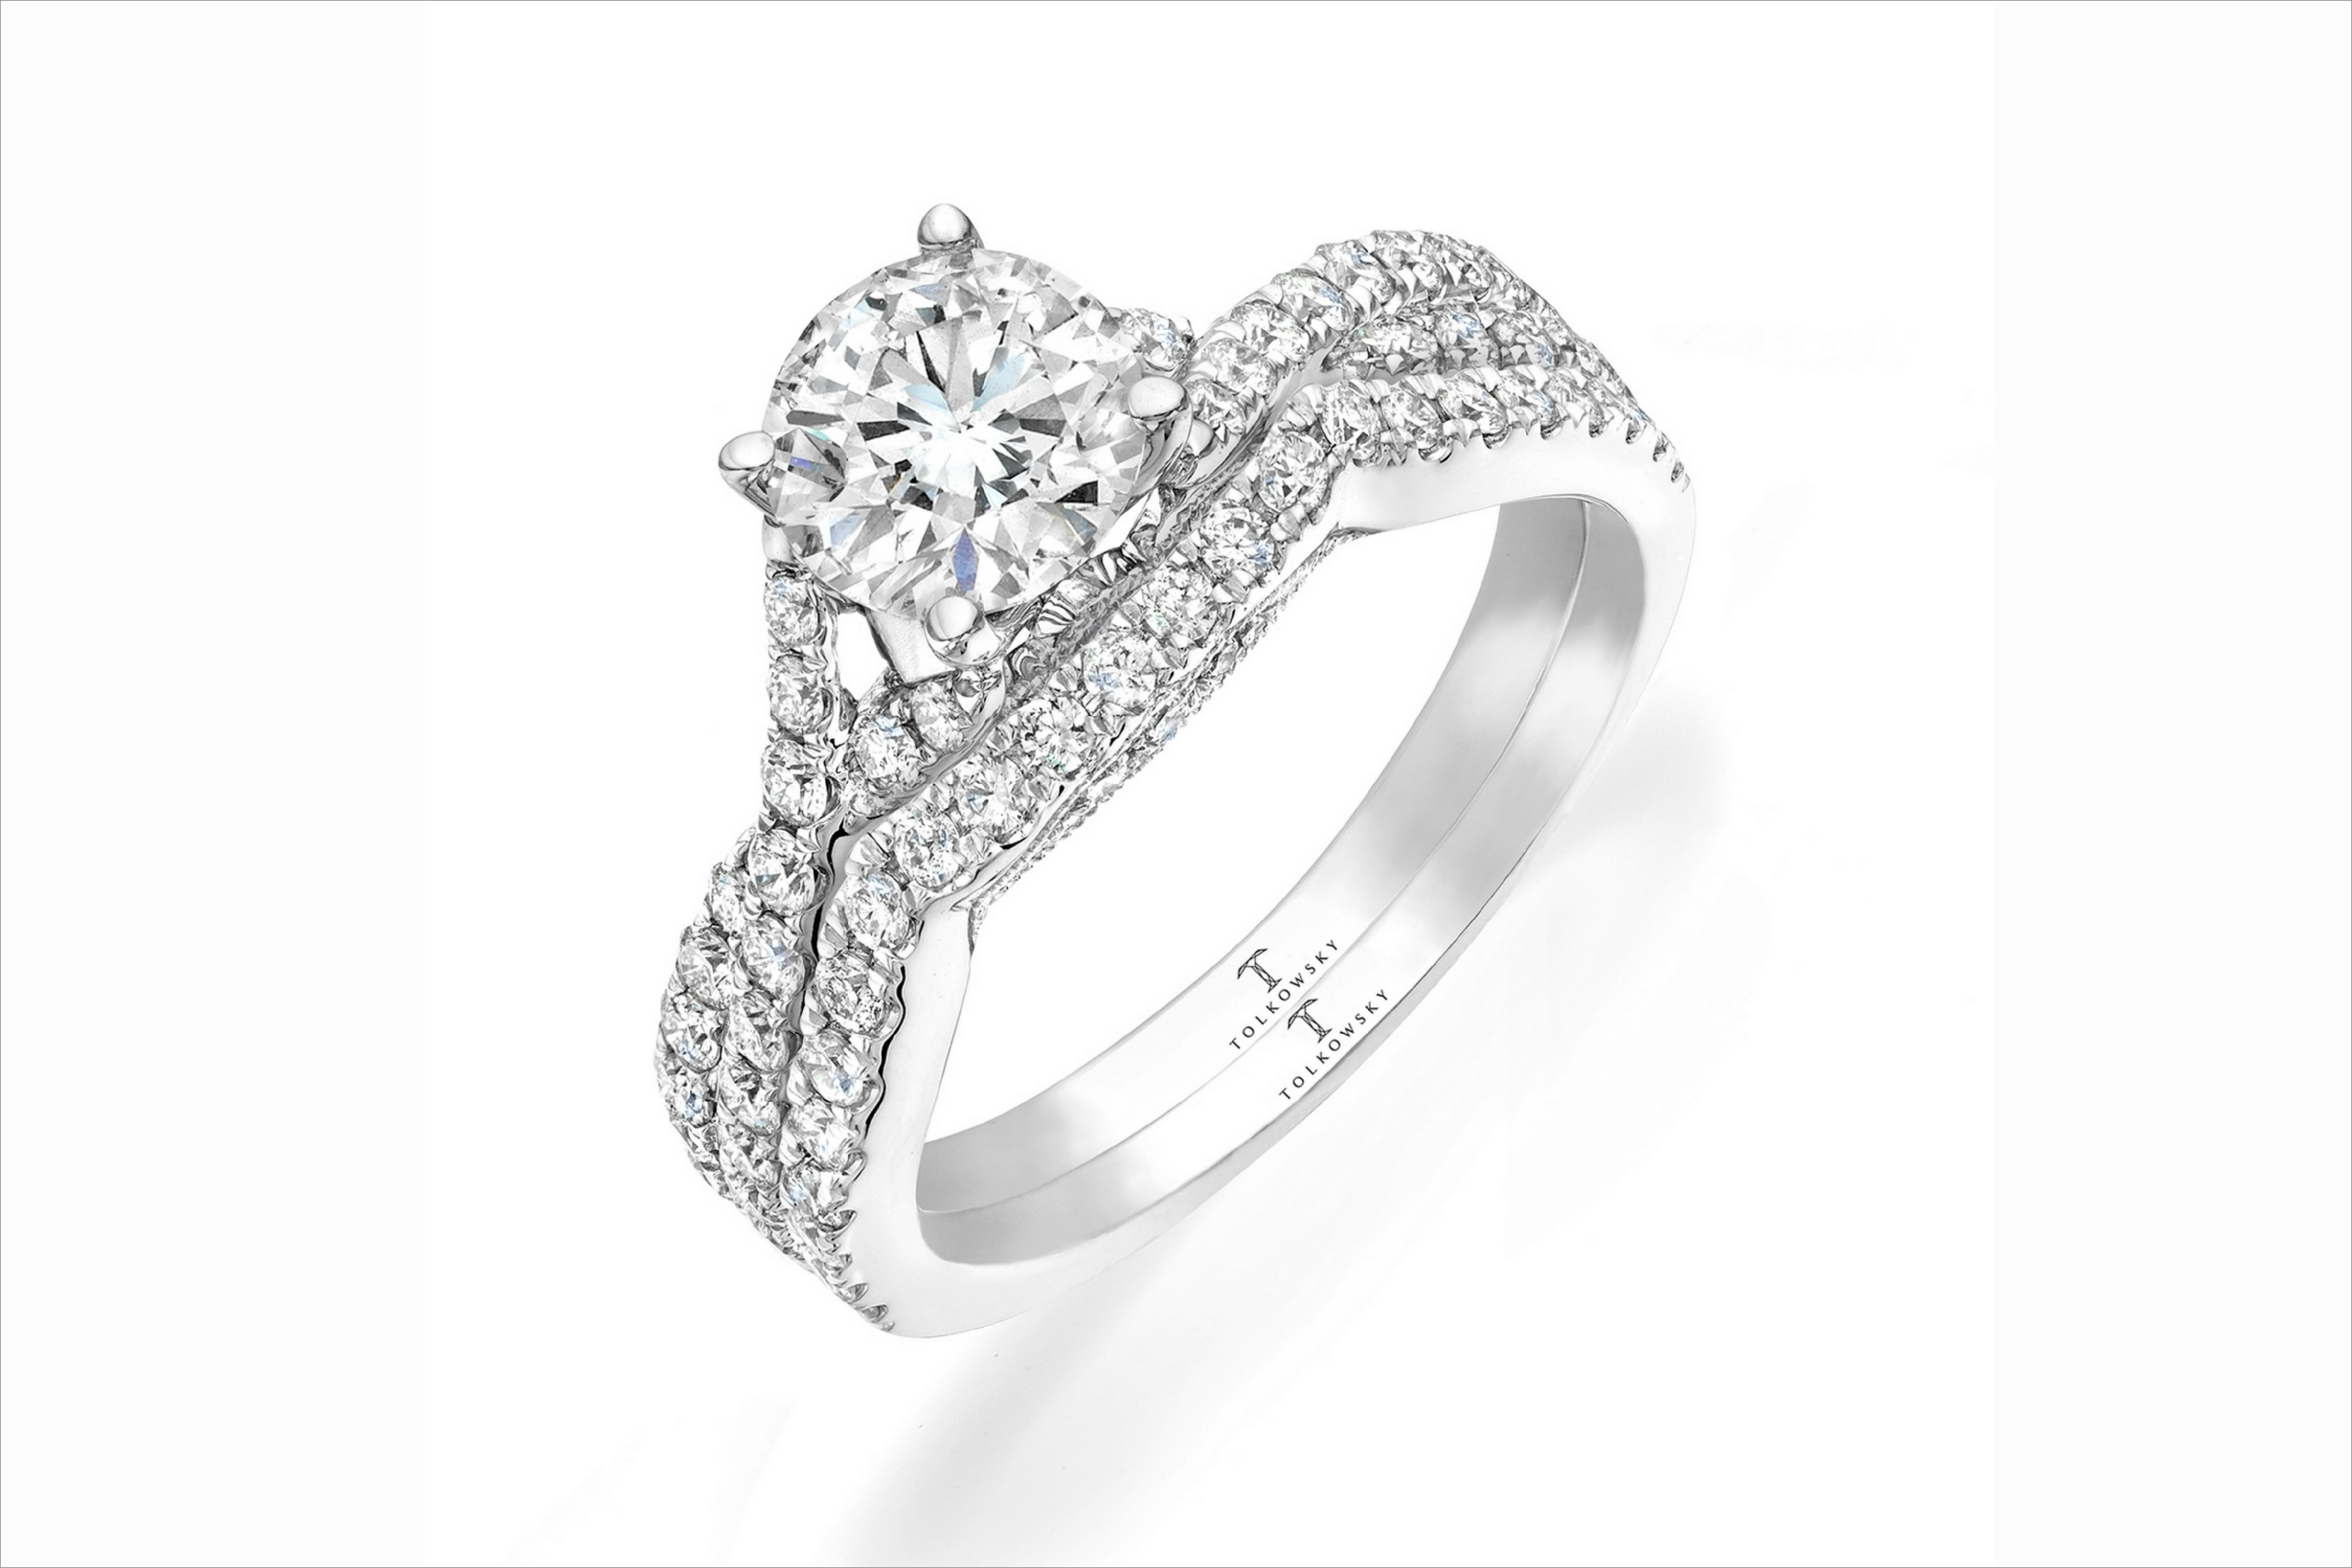 Tolkowsky Wedding Ring Bridal Set